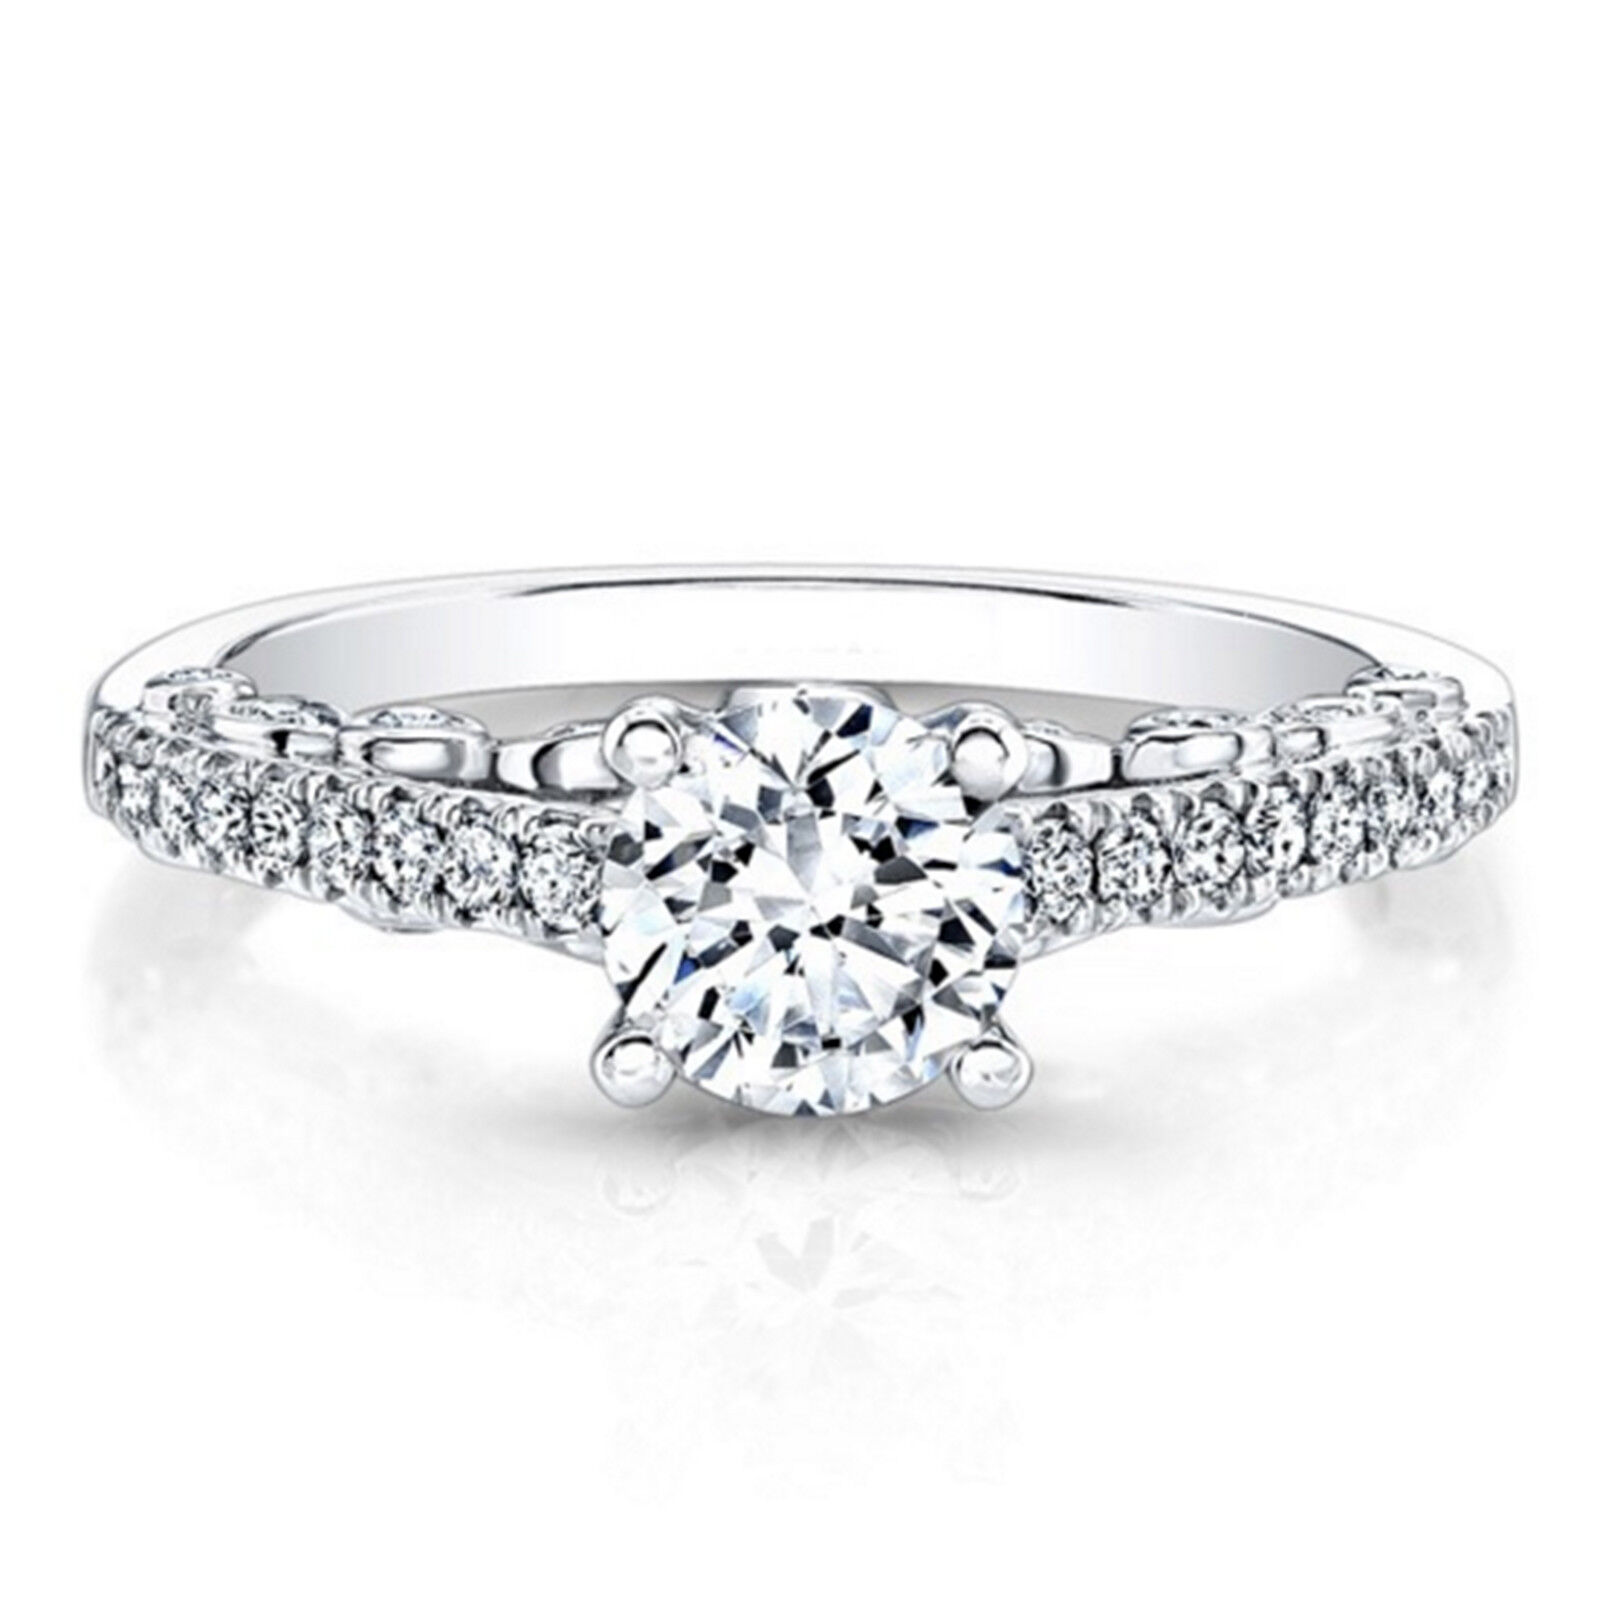 0.74 Ct Round Cut Diamond Engagement Rings 14K Solid White gold Women's Size 7 6